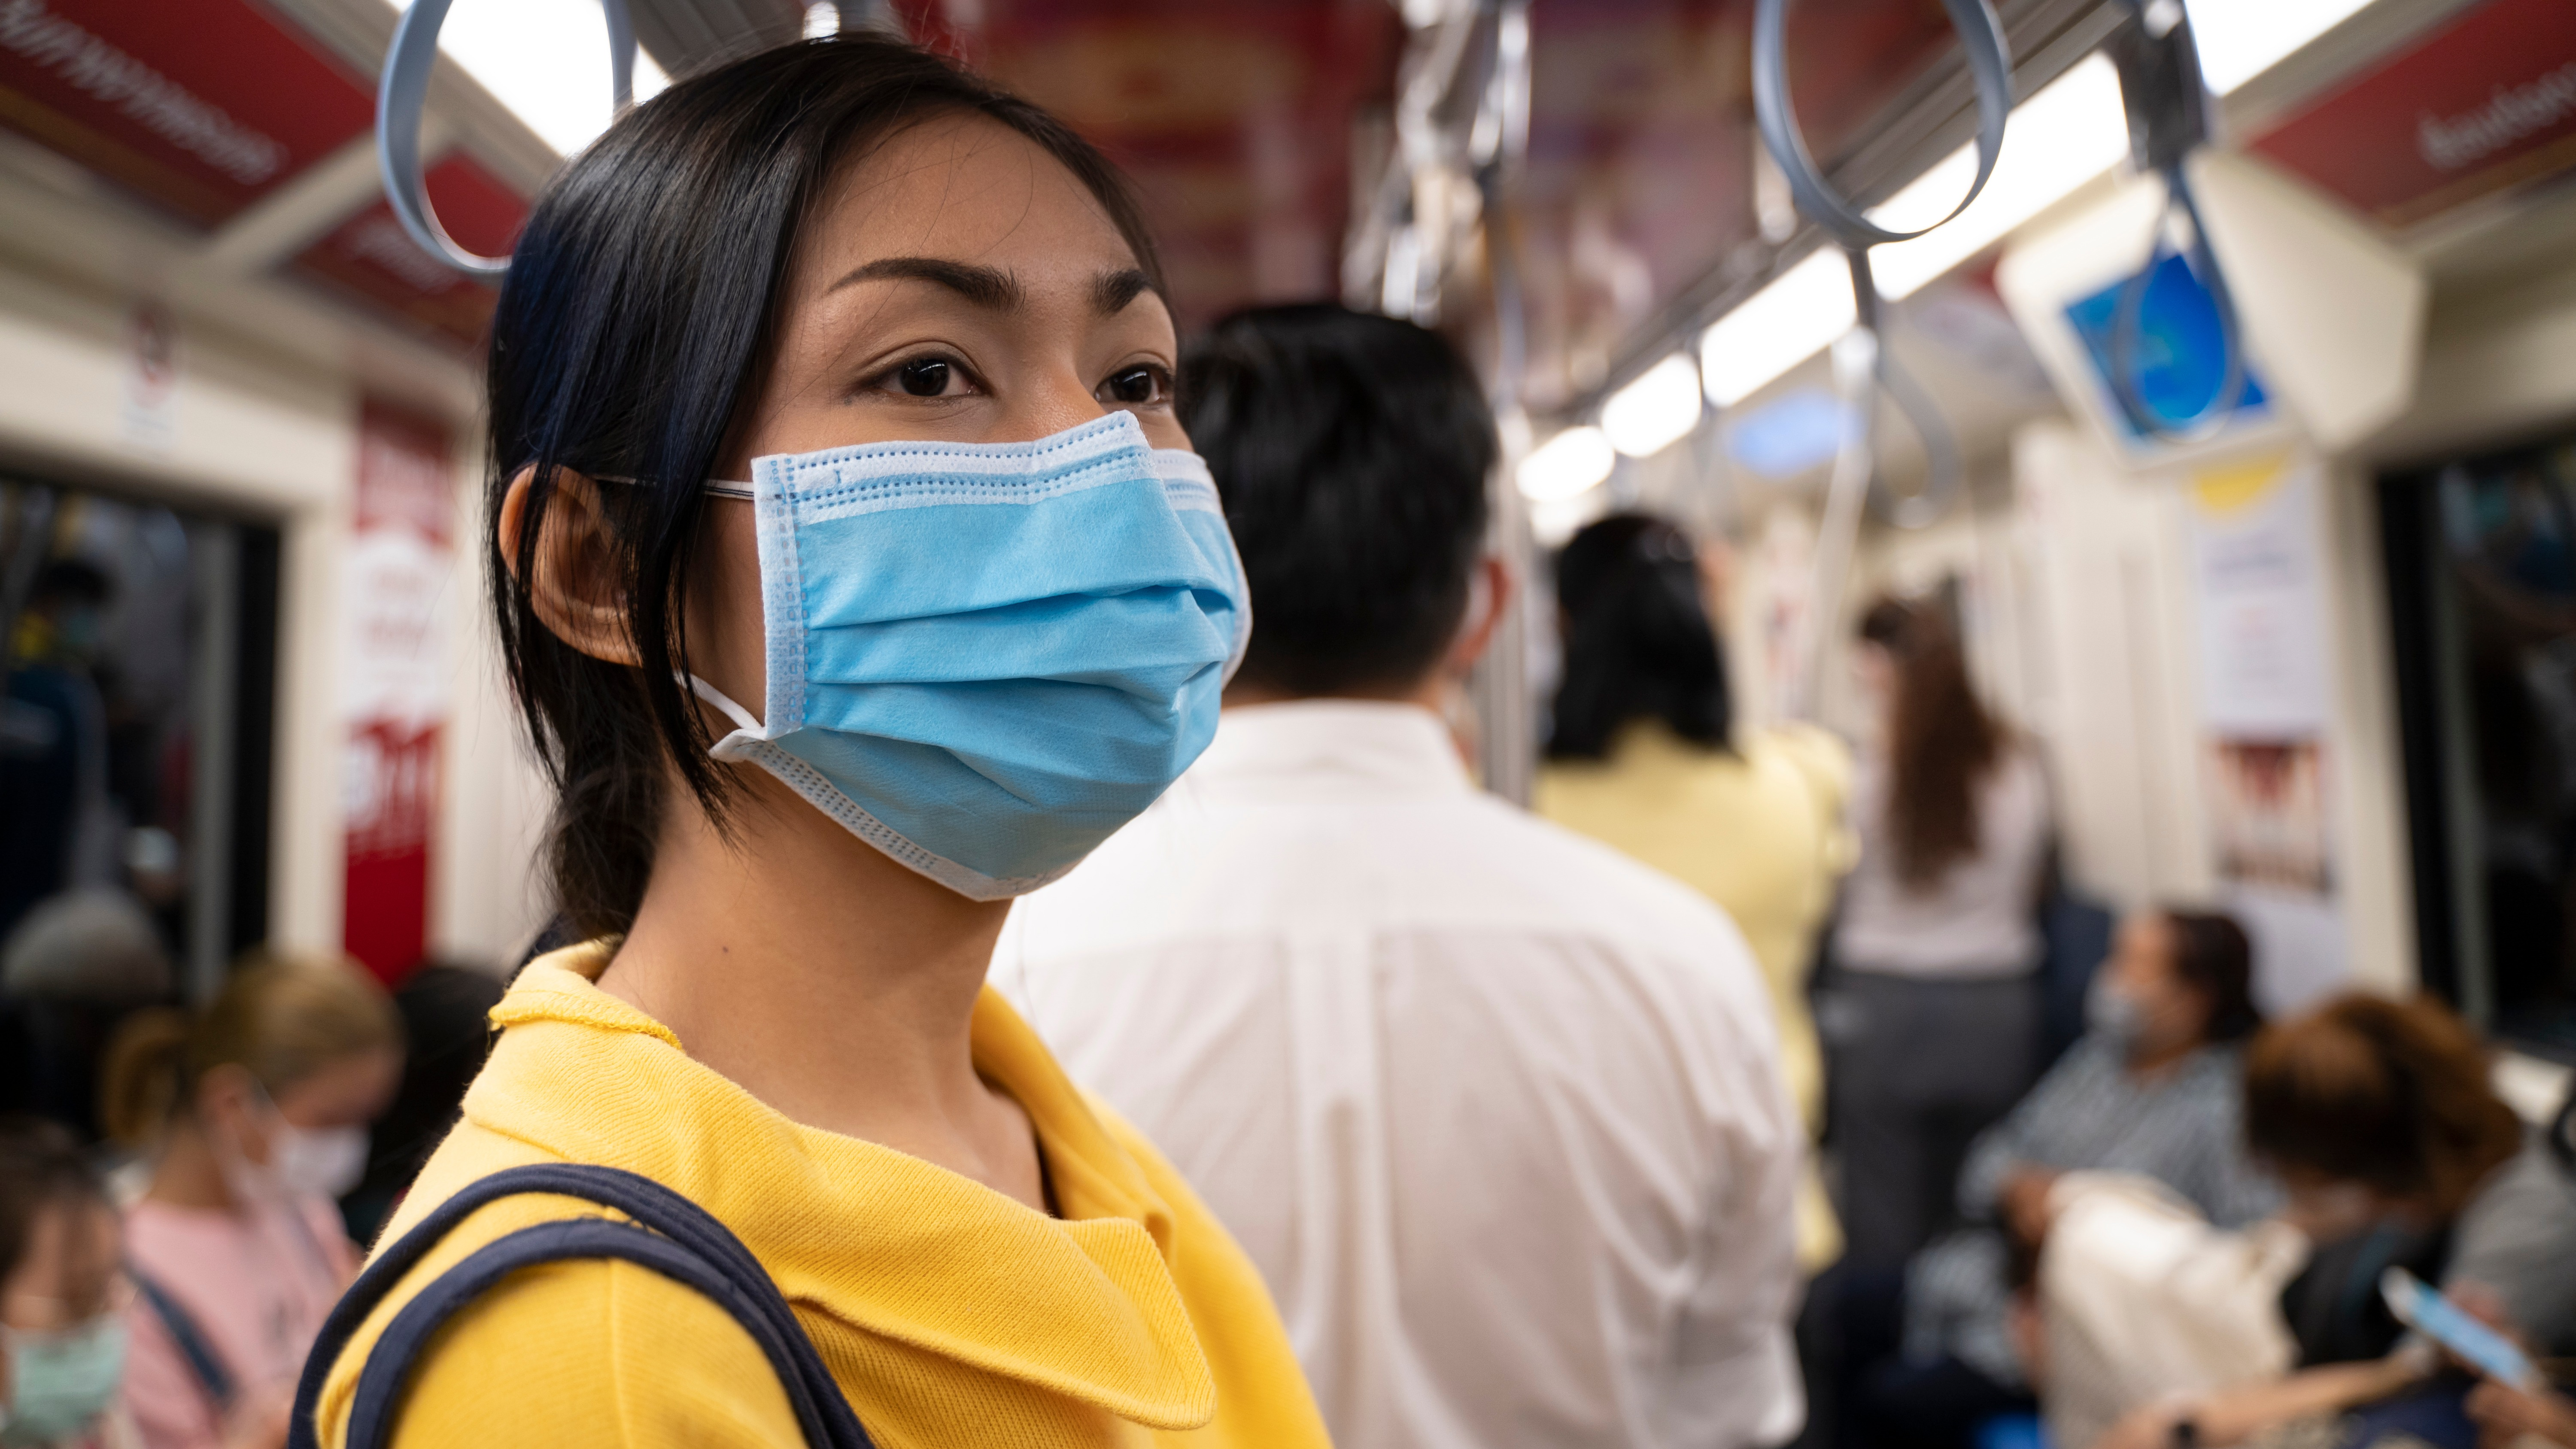 Woman on train wearing mask